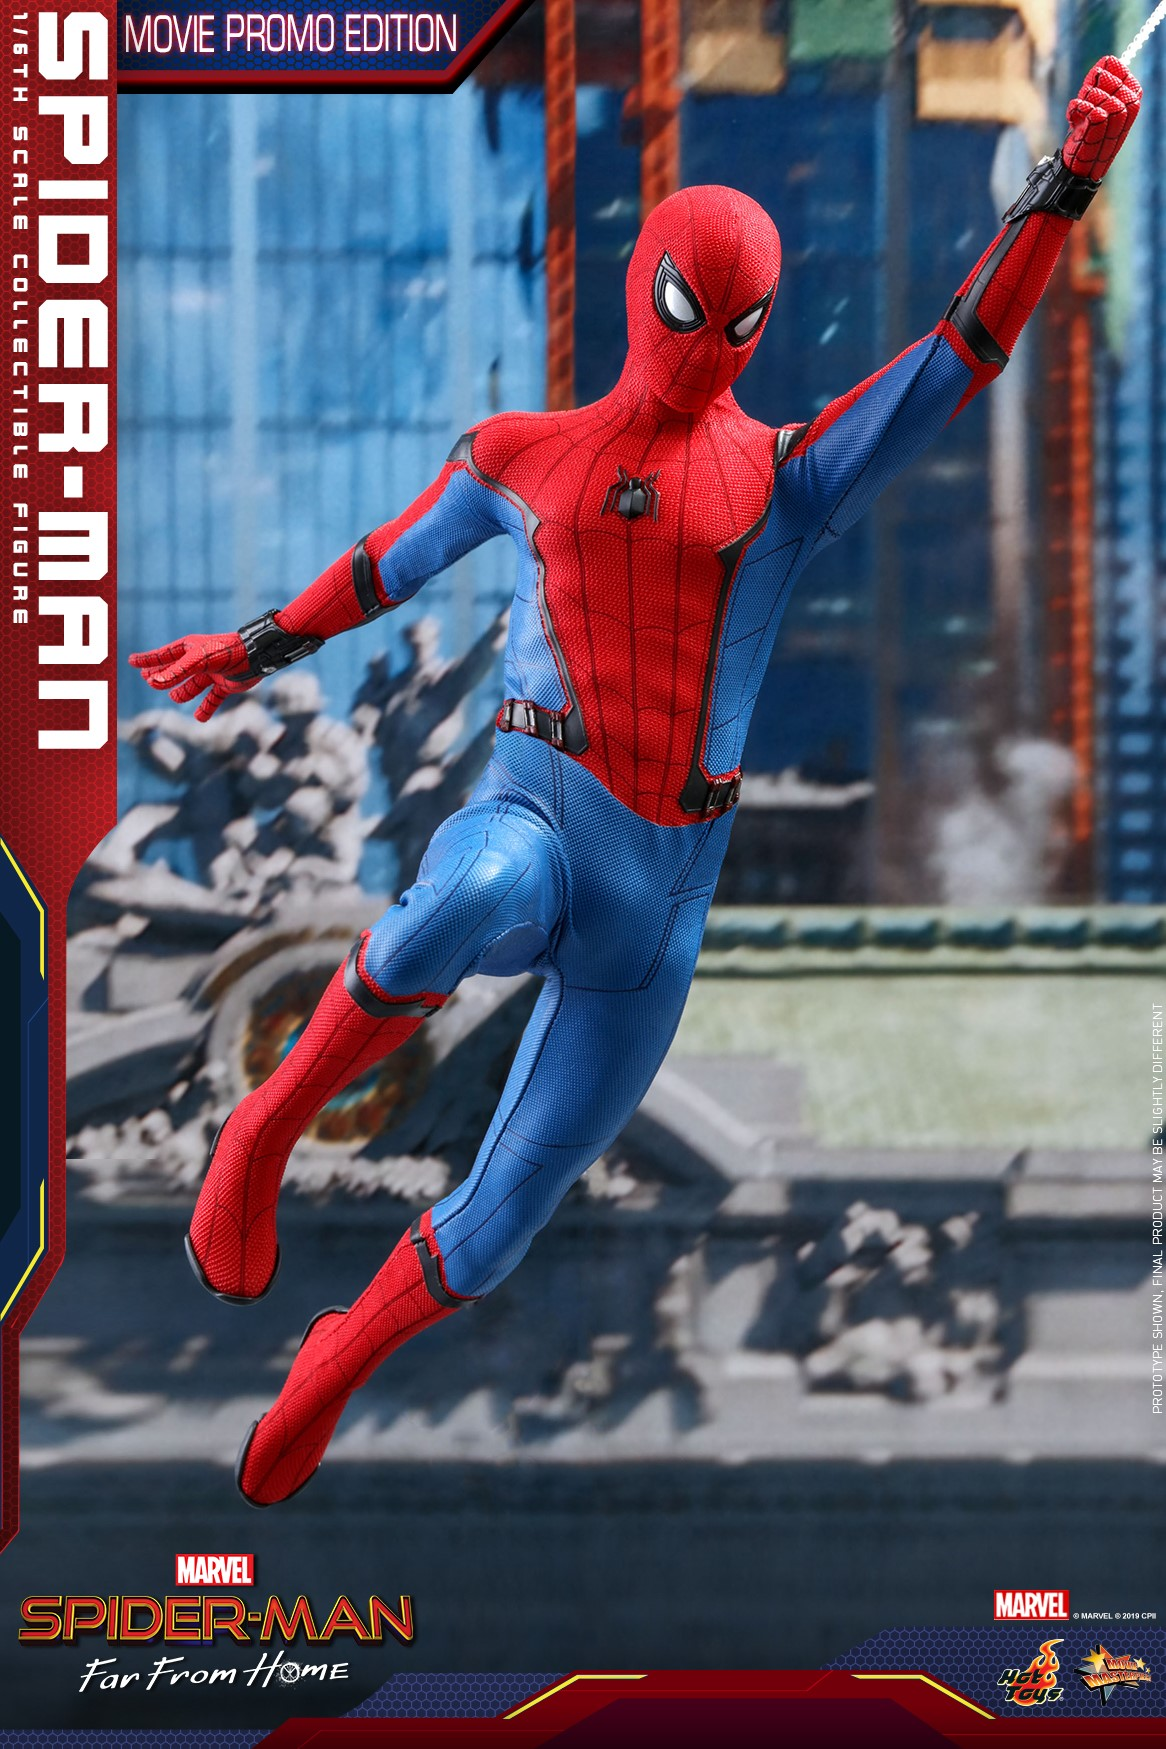 Hot Toys Movie Promo Spider Man Reissue 1 6 Figure Marvel Toy News